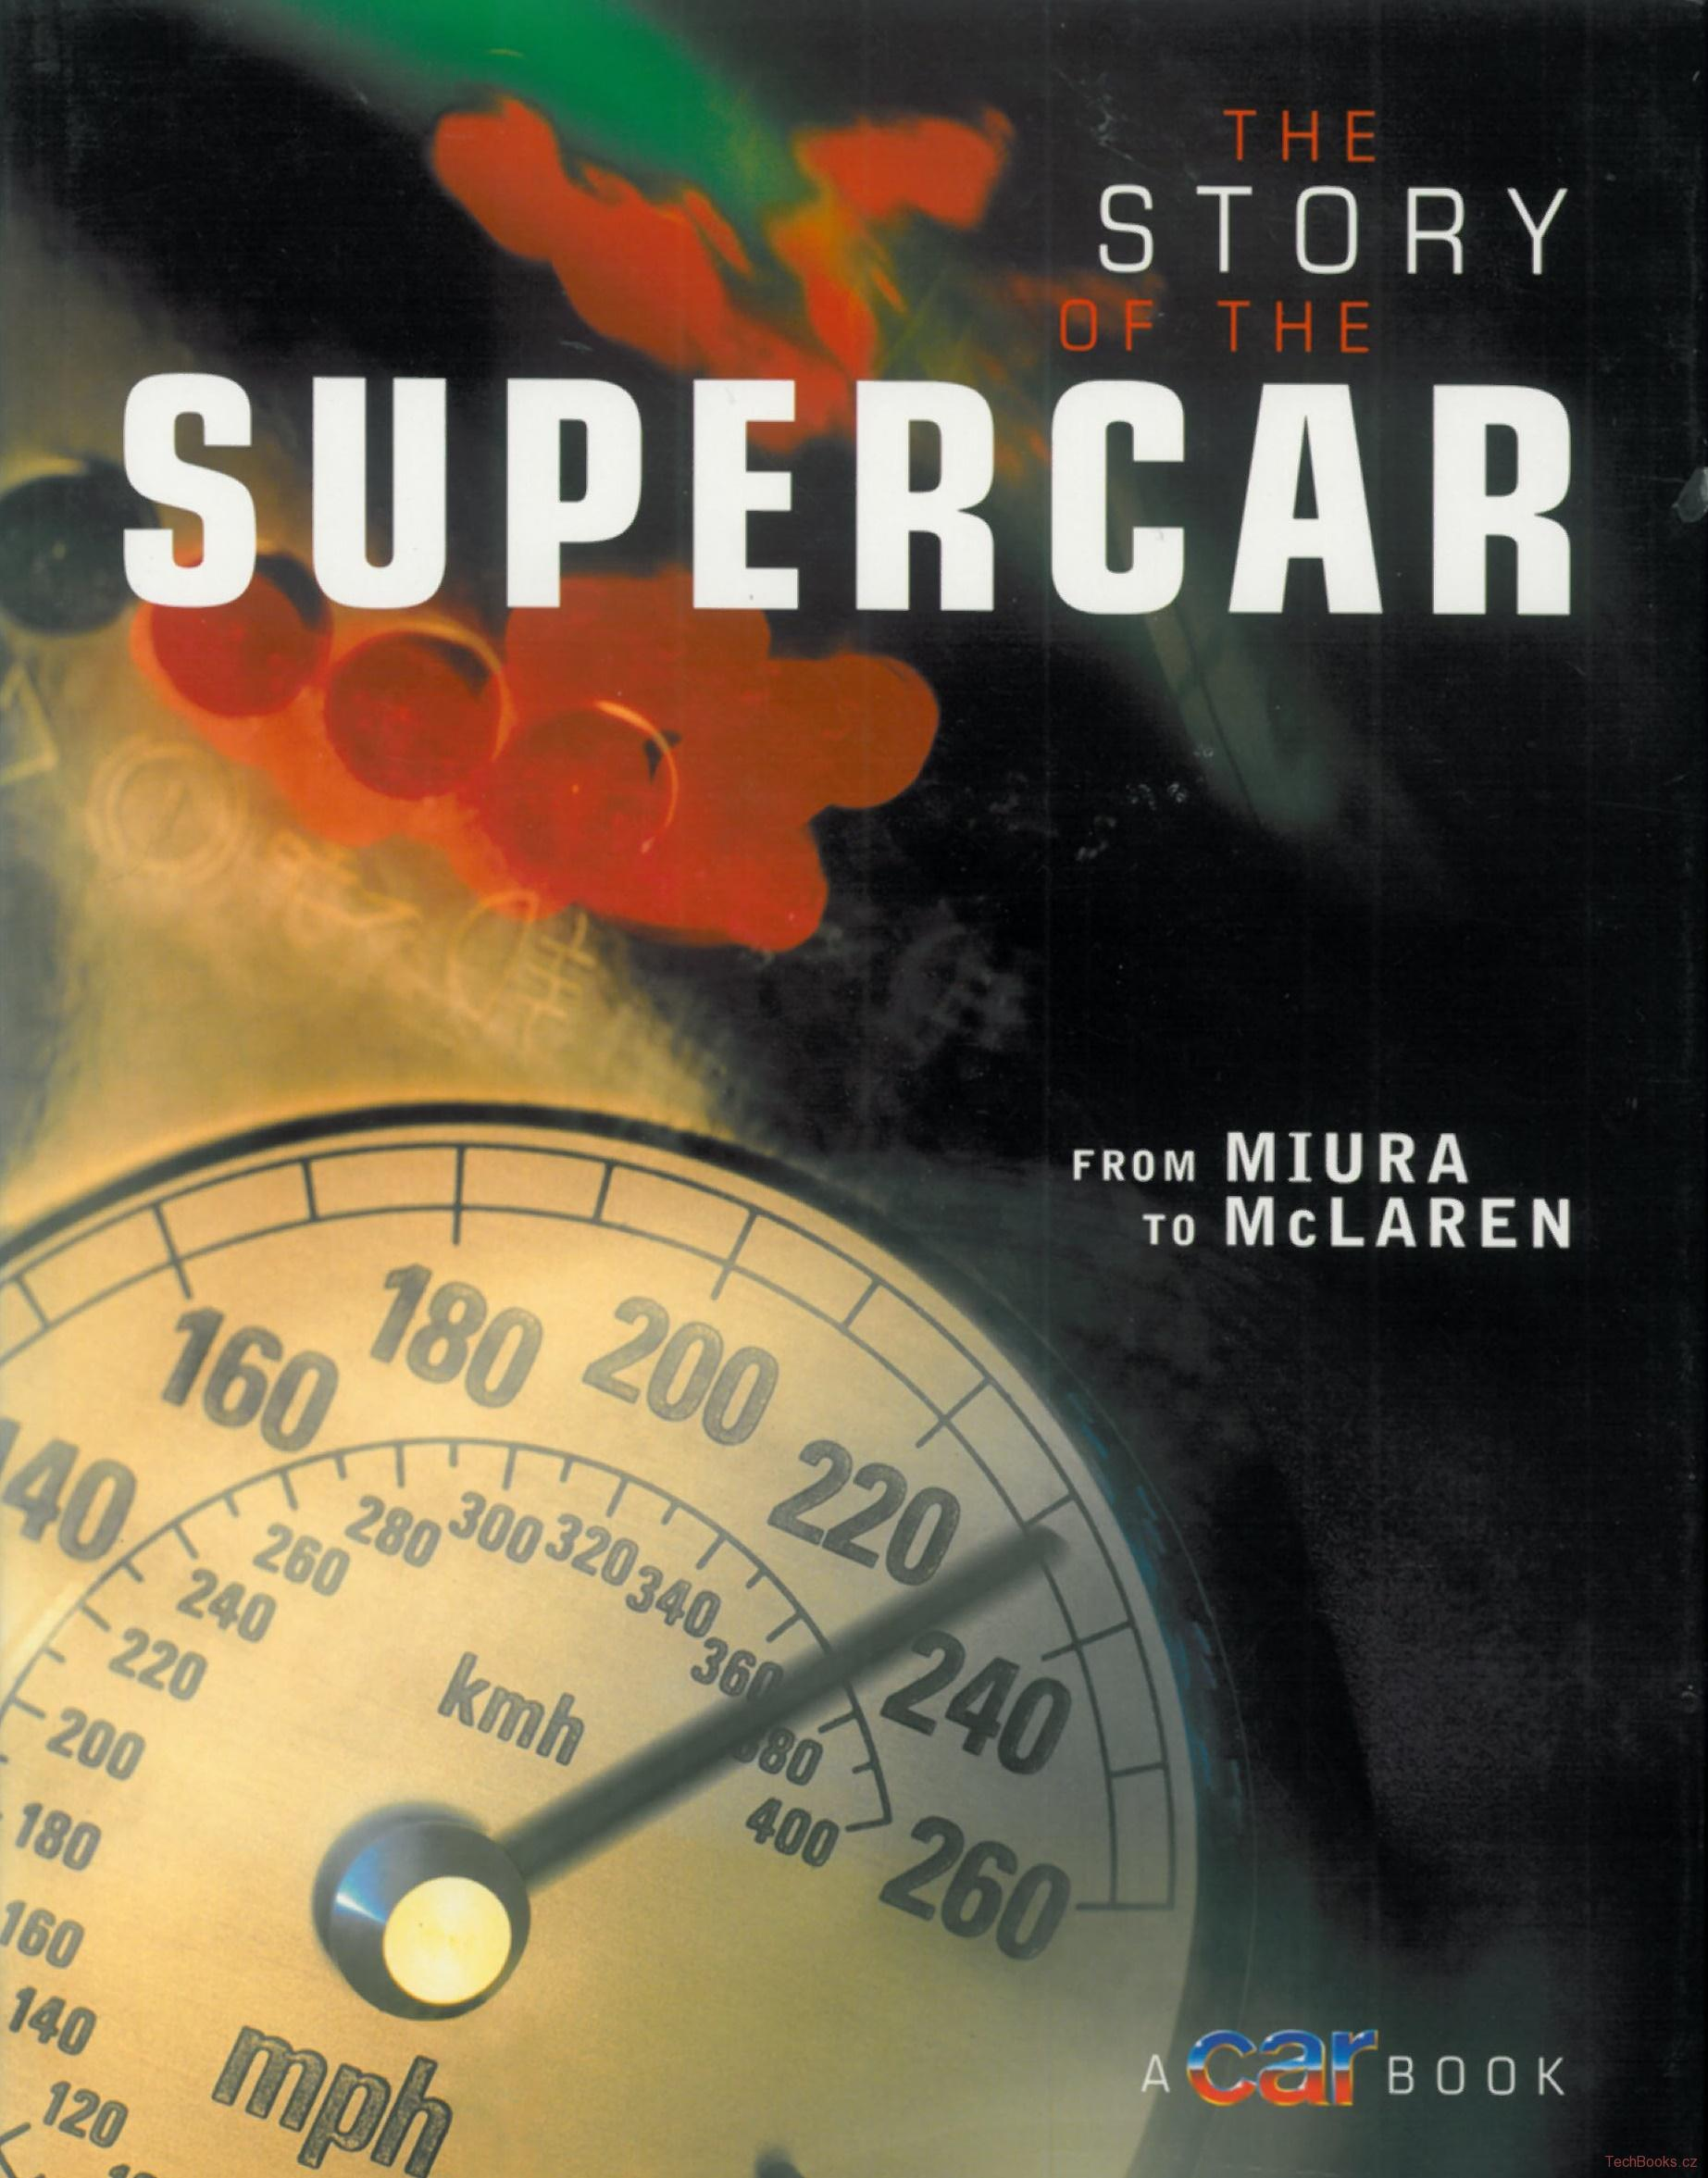 The Story Of The Supercar: From MIURA To McLAREN